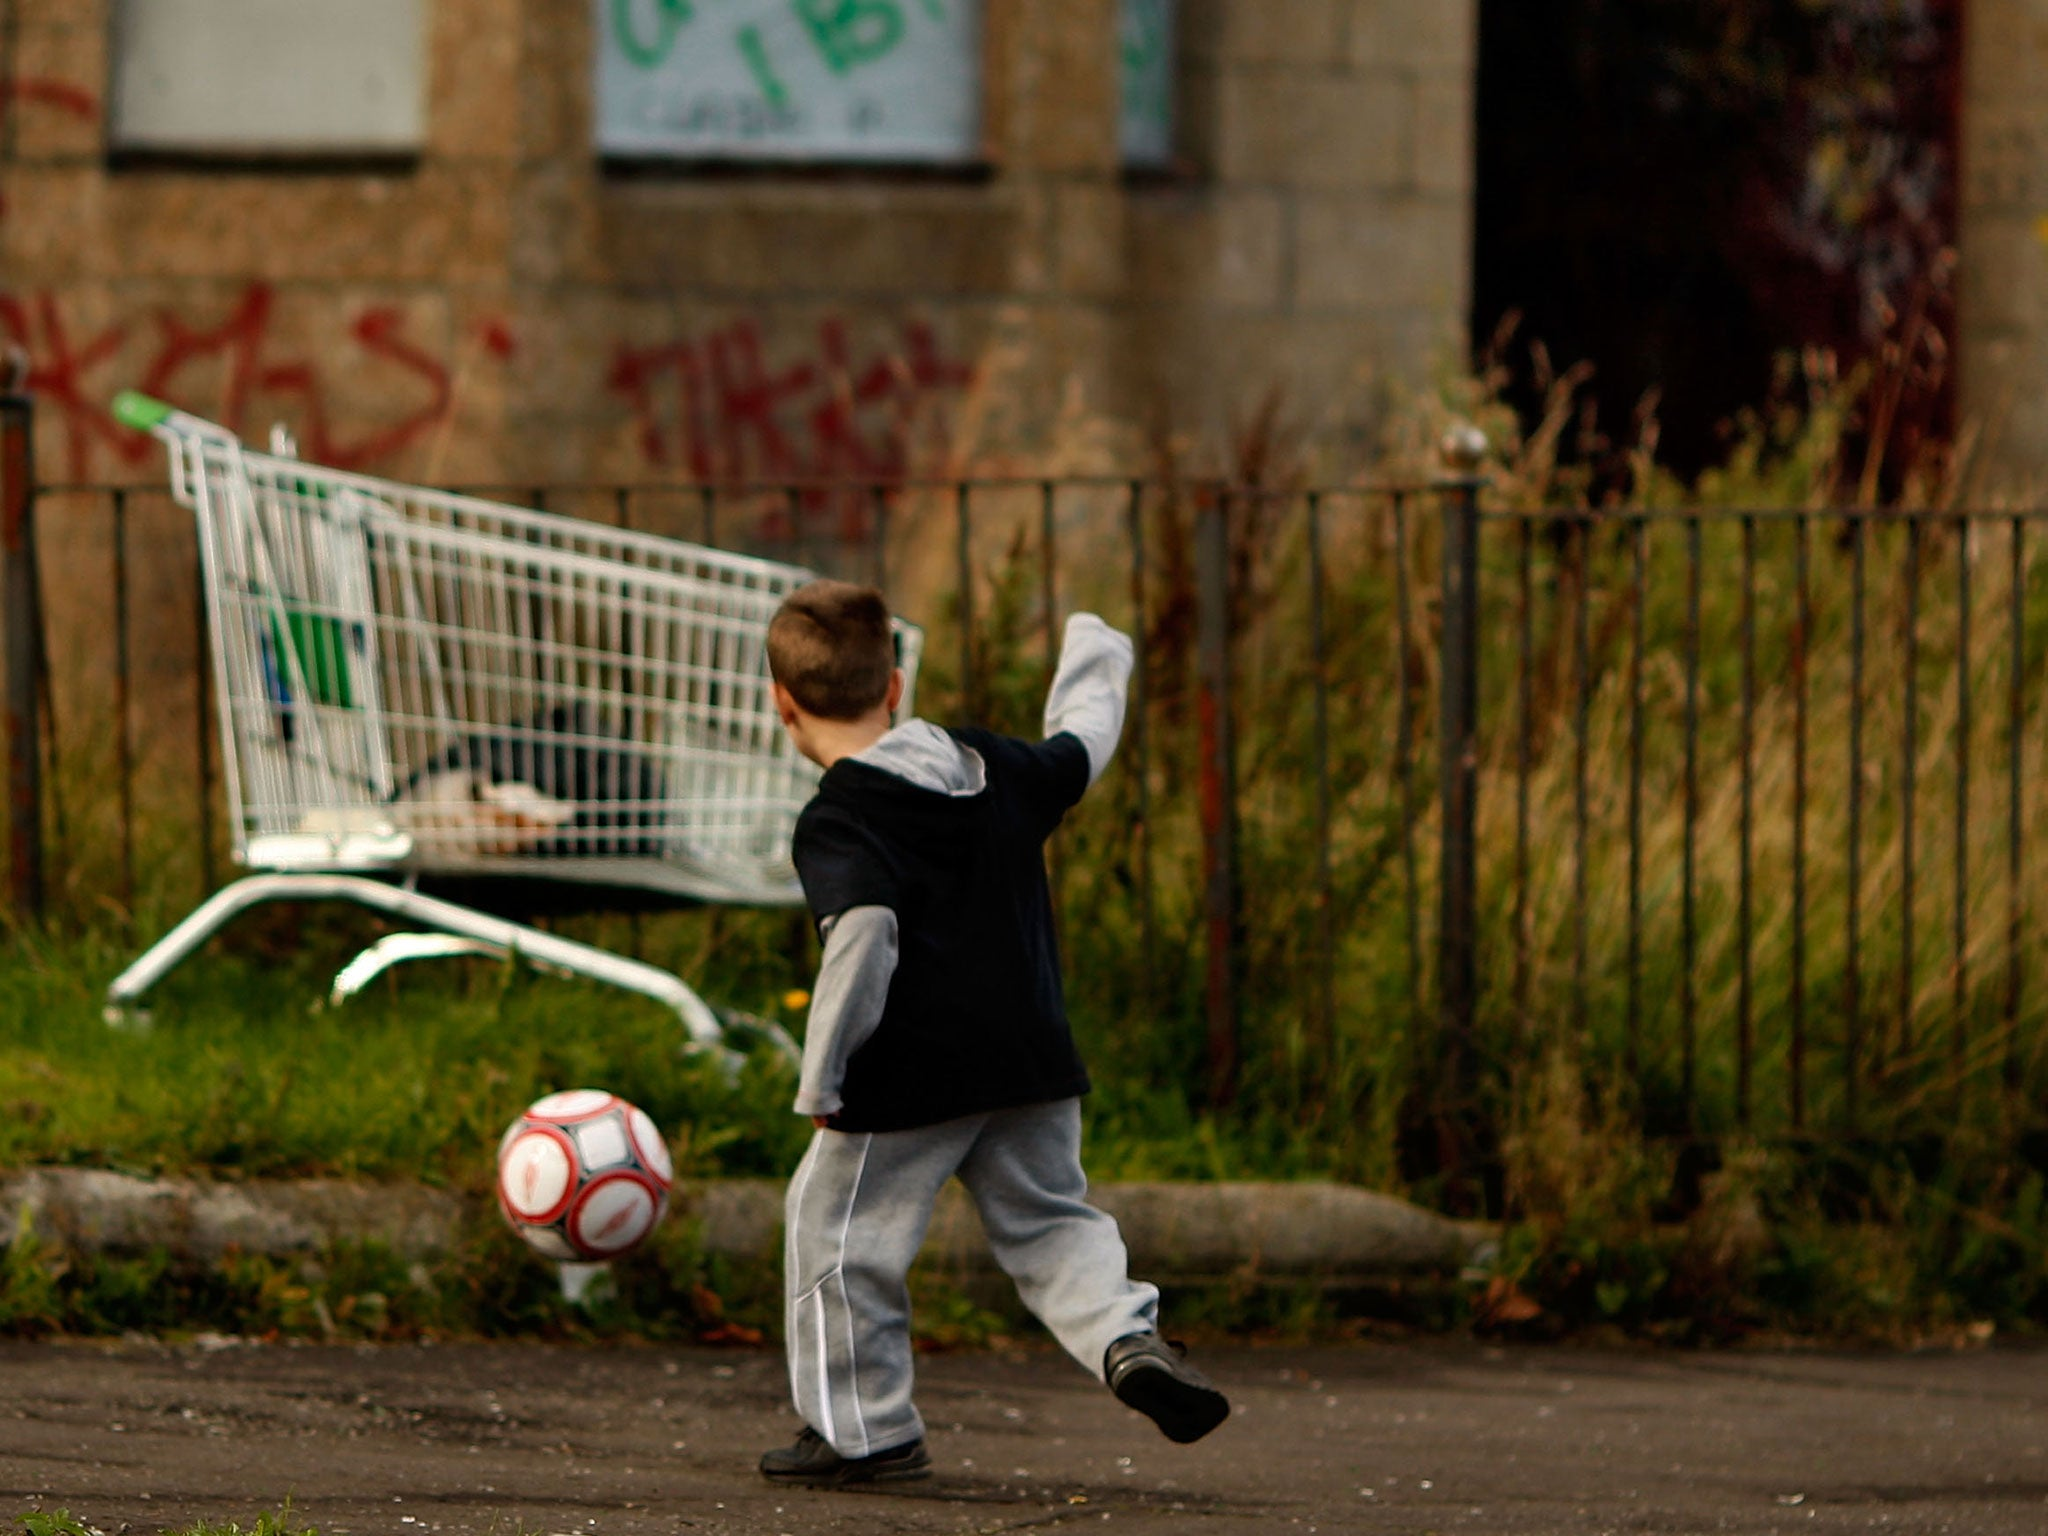 child poverty in uk essay A) what are the main causes of child poverty in the uk today the united kingdom is widely regarded as having one of the worst rates of child.